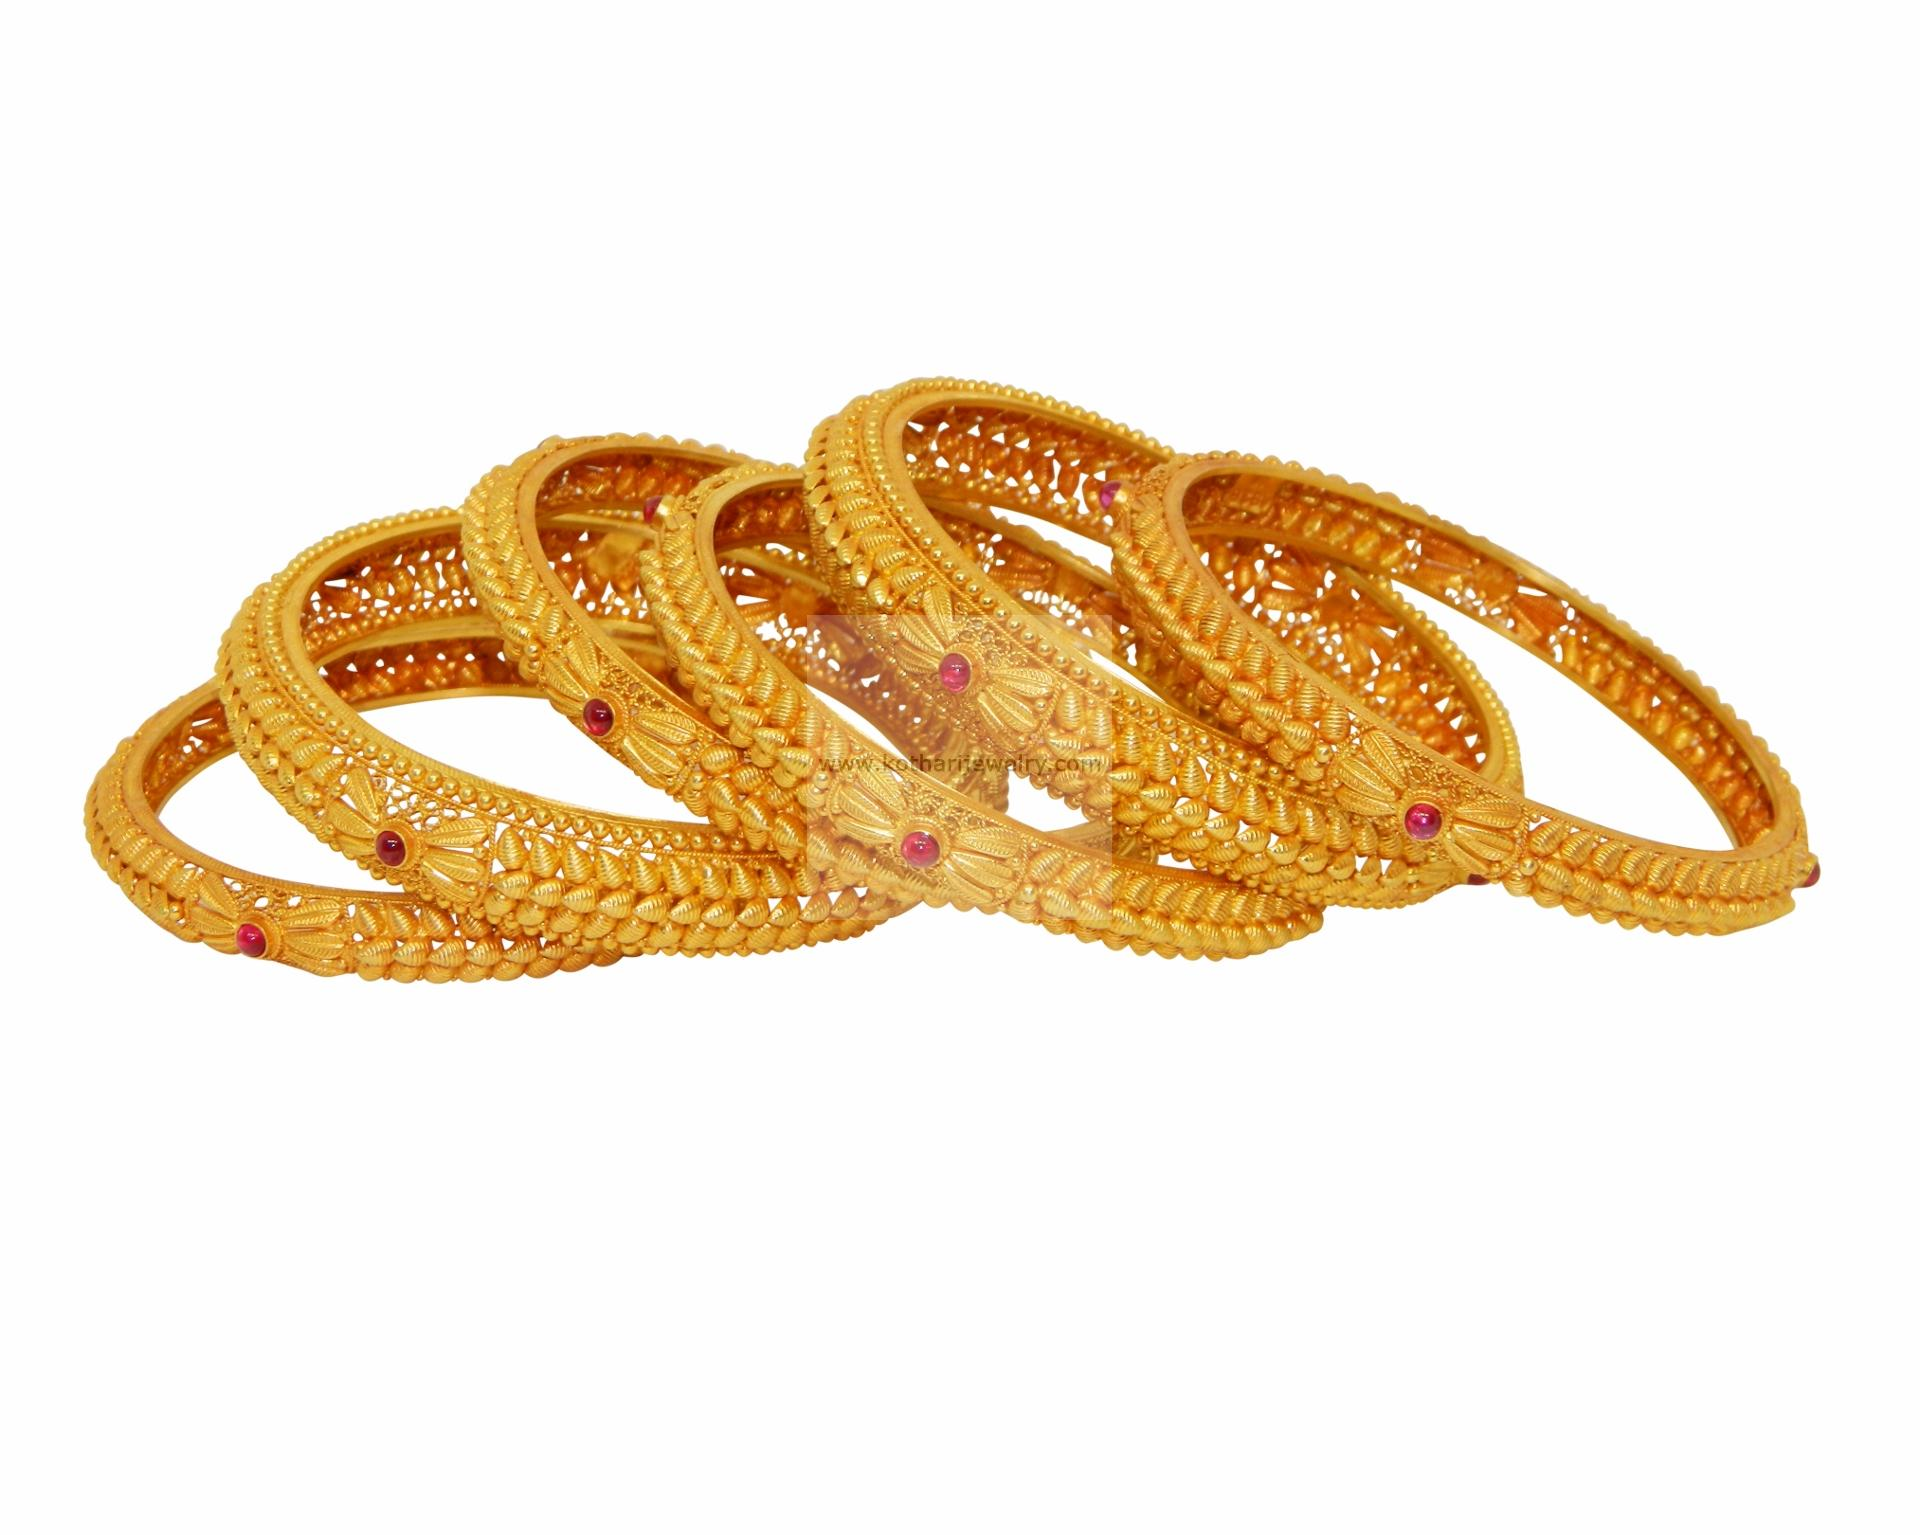 gold lovingly karat each bracelets bangle victorian a of pin bangles in pair rendered matched